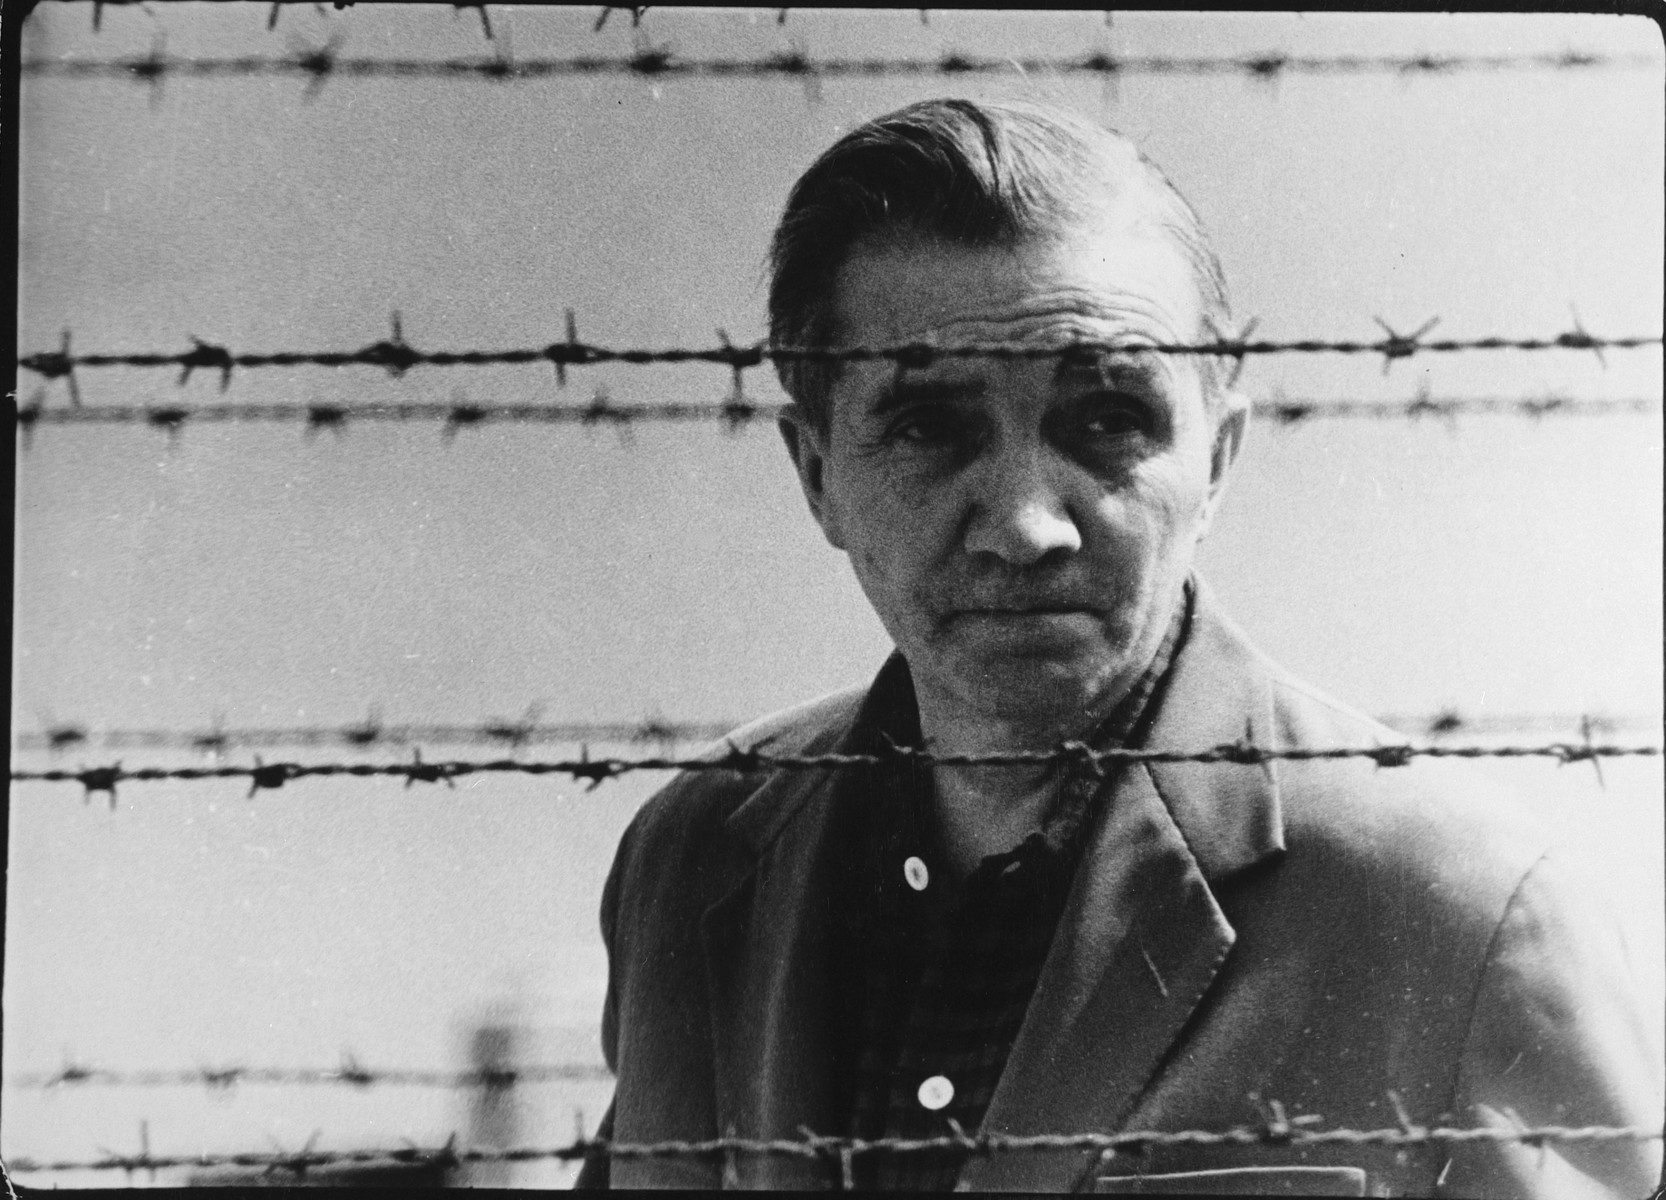 Postwar portrait of Aleksander Kulisiewiecz, Polish composer and concentration camp survivor, standing behind a barbed wire fence.